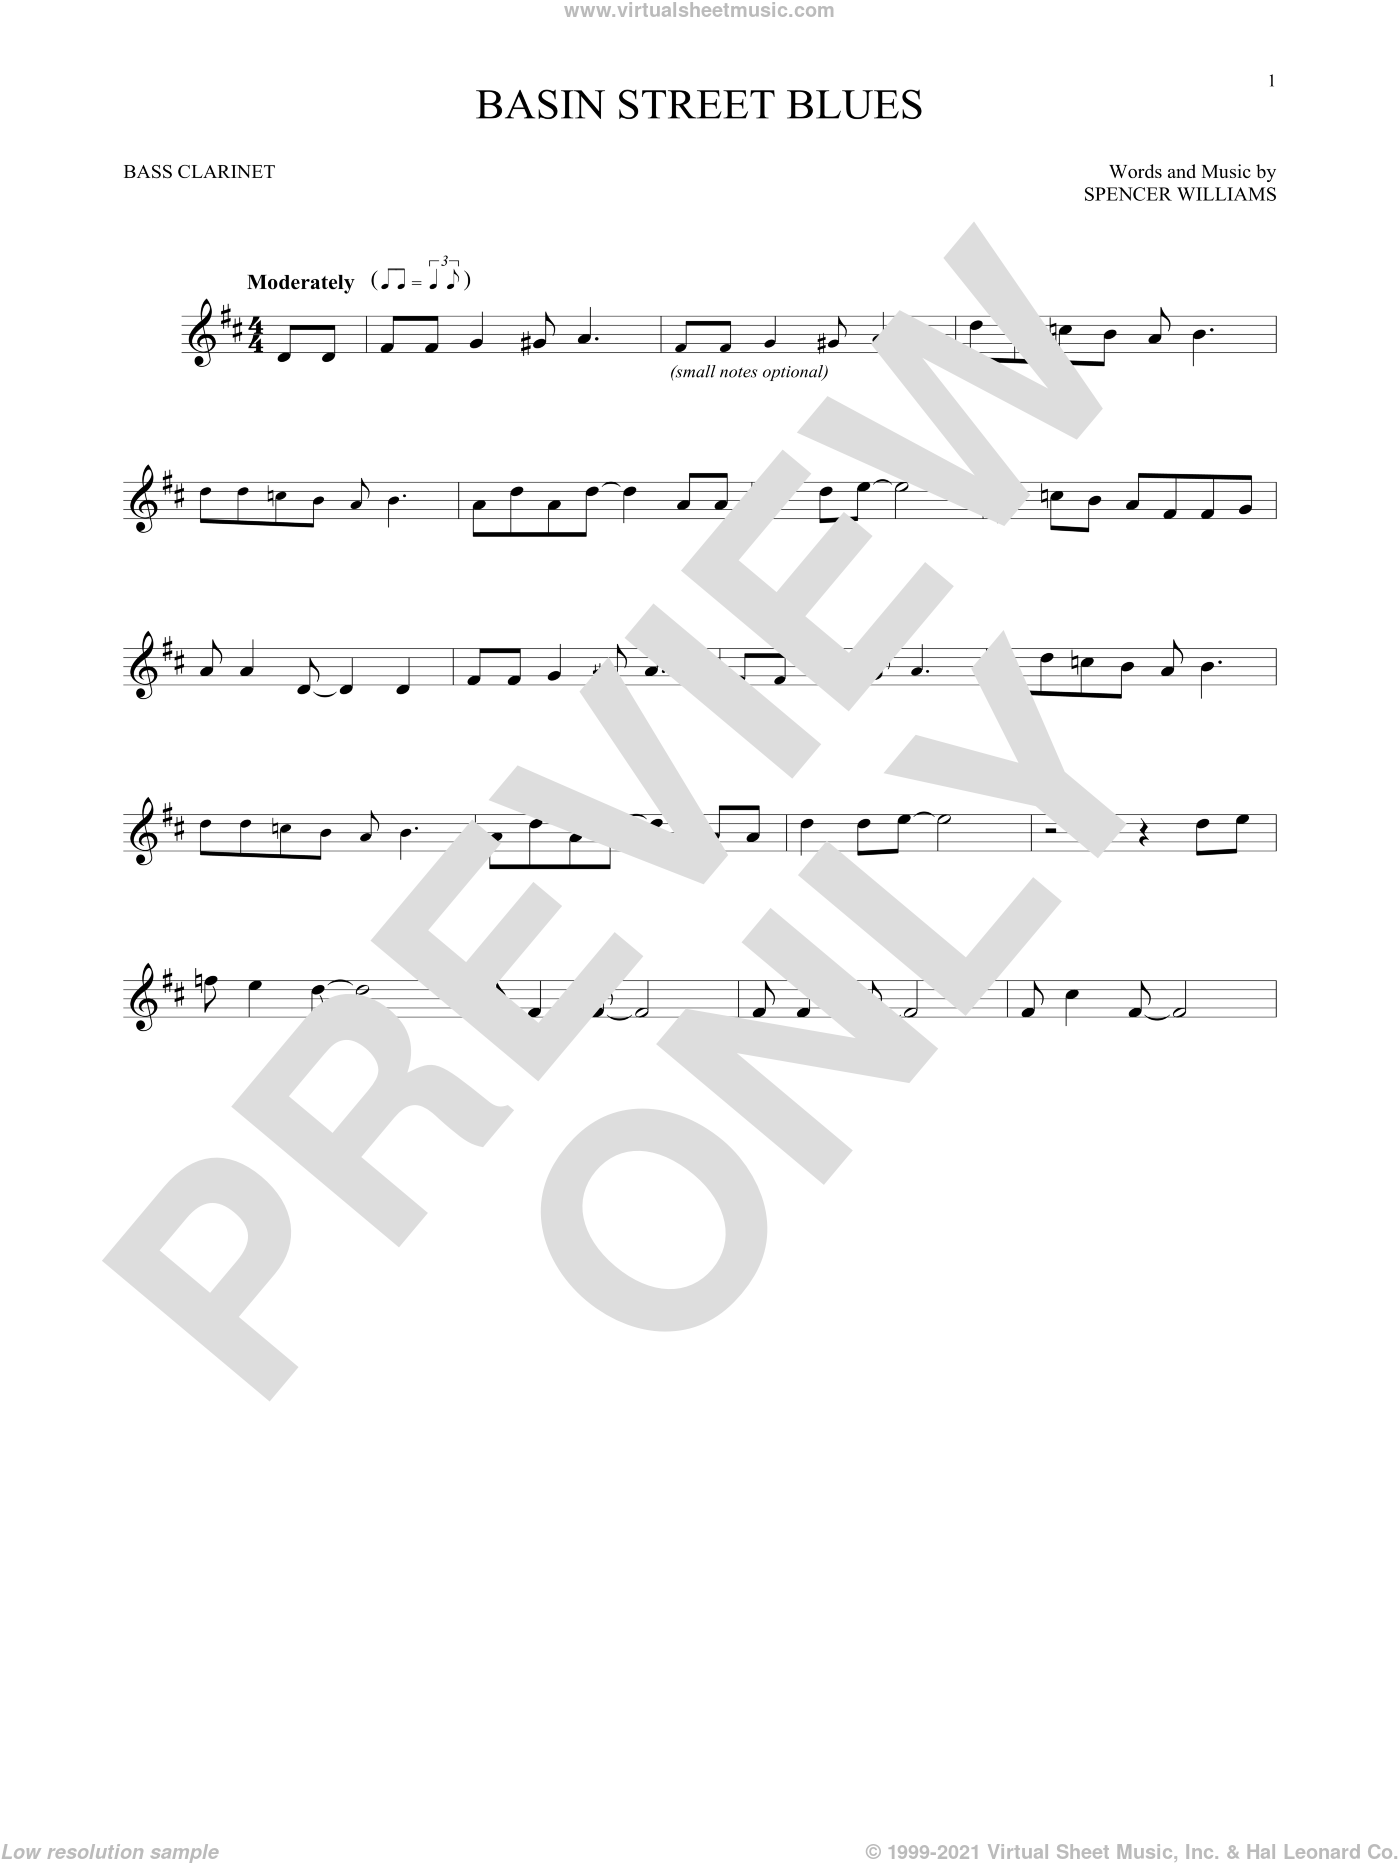 Basin Street Blues sheet music for Bass Clarinet Solo (clarinetto basso) by Spencer Williams, intermediate skill level